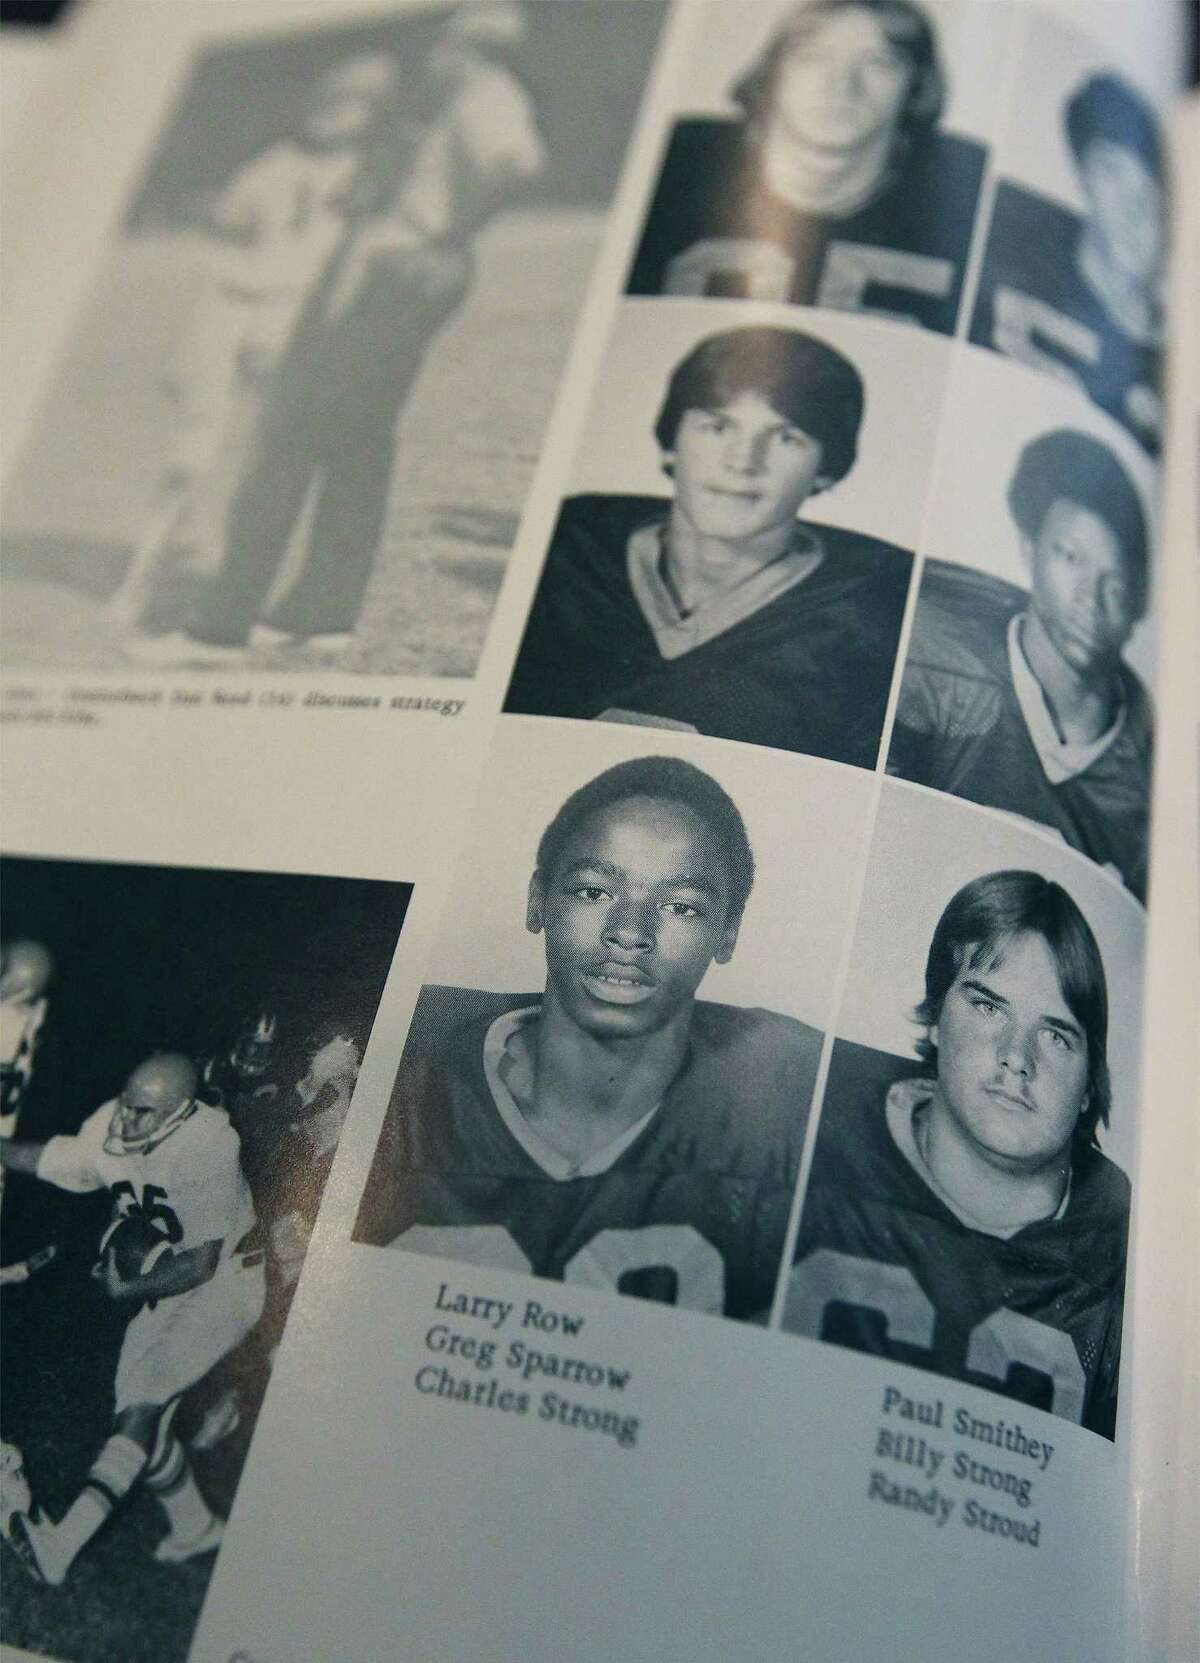 As a 5-3, 130-pound junior at Batesville High School, Charlie Strong relied on his speed and technique to play football.